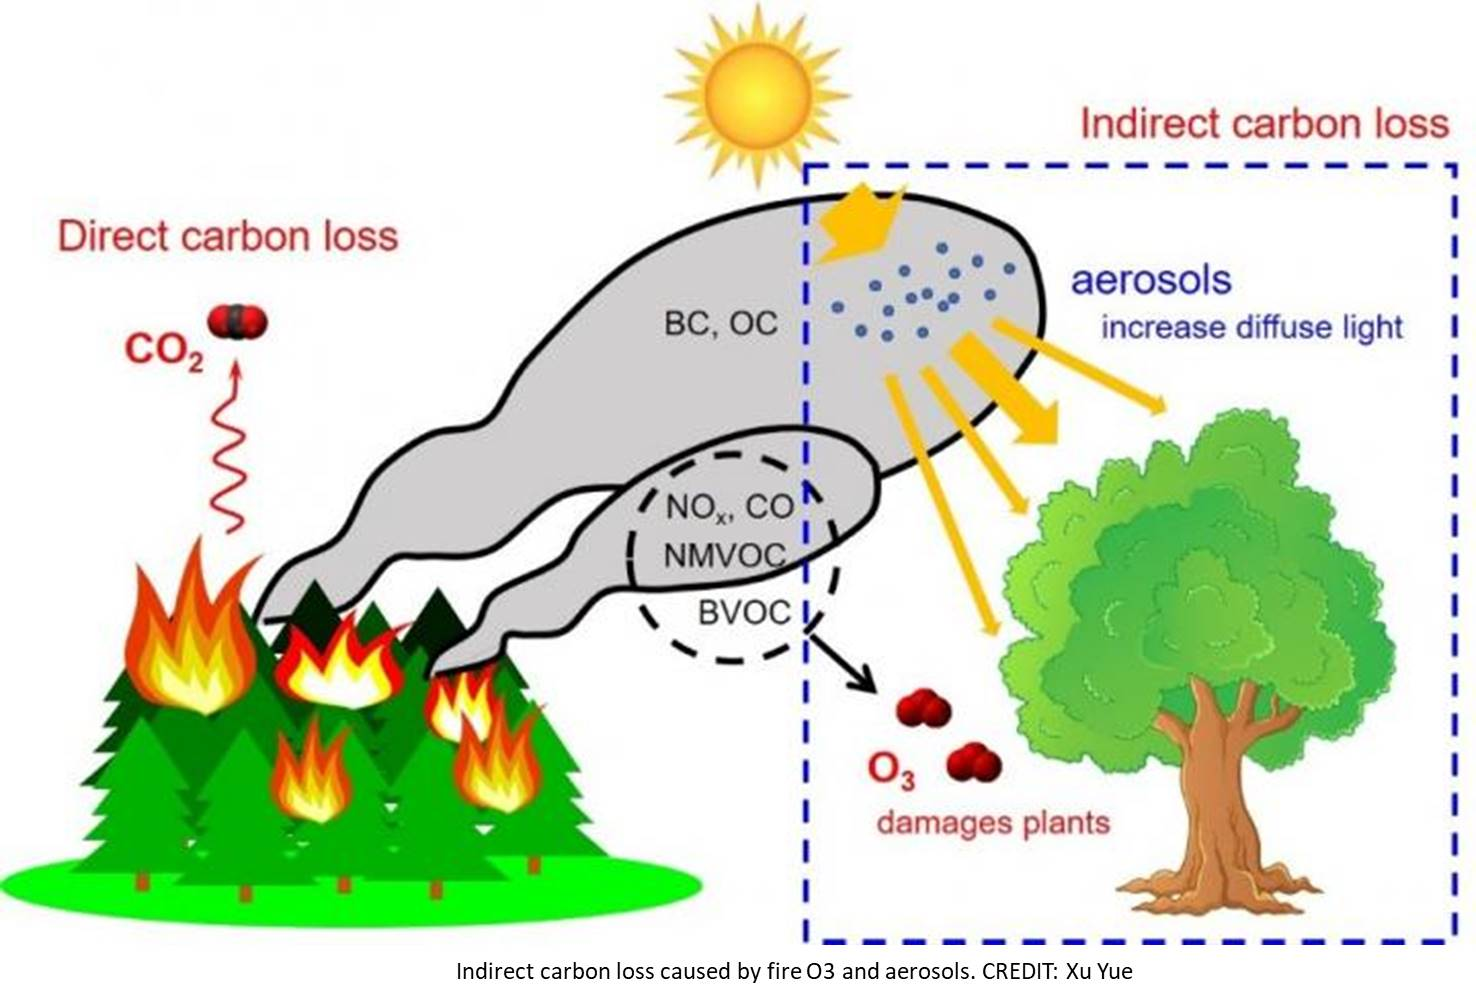 Fire air pollution weakens global ecosystem productivity